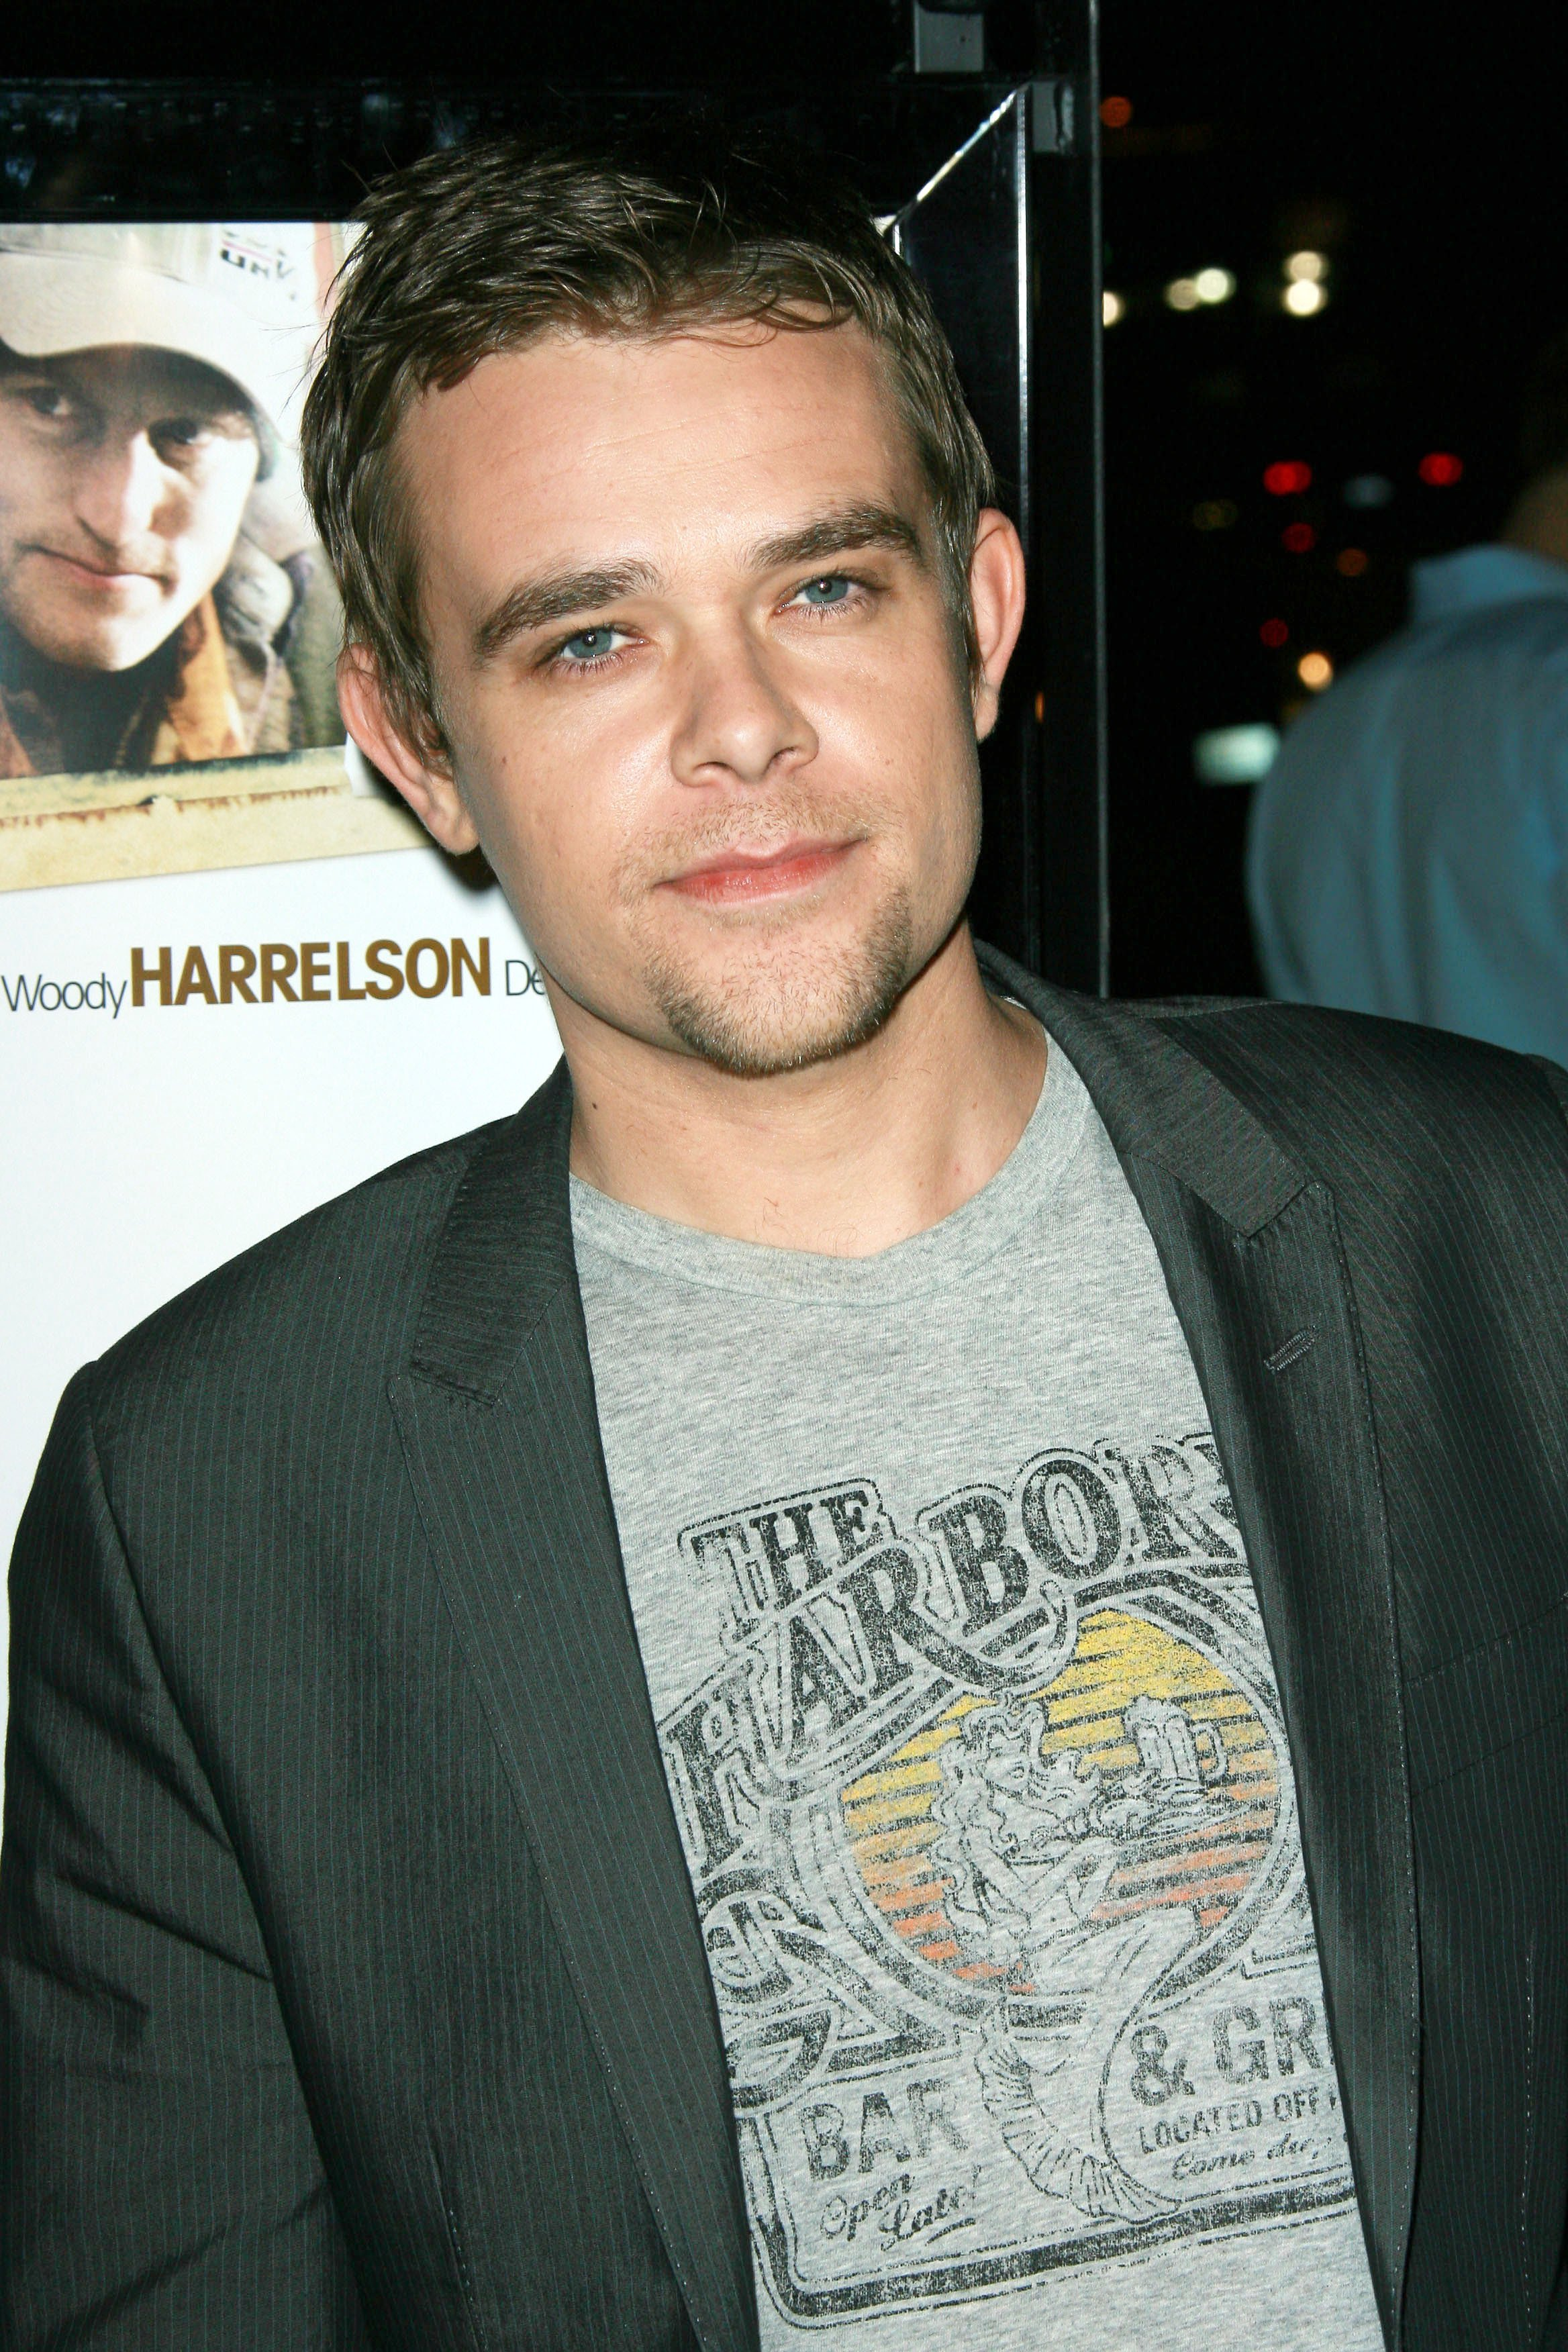 Nick Stahl at the Sleepwalking Premiere held at the Directors Guild of America, Hollywood | Photo: Shutterstock